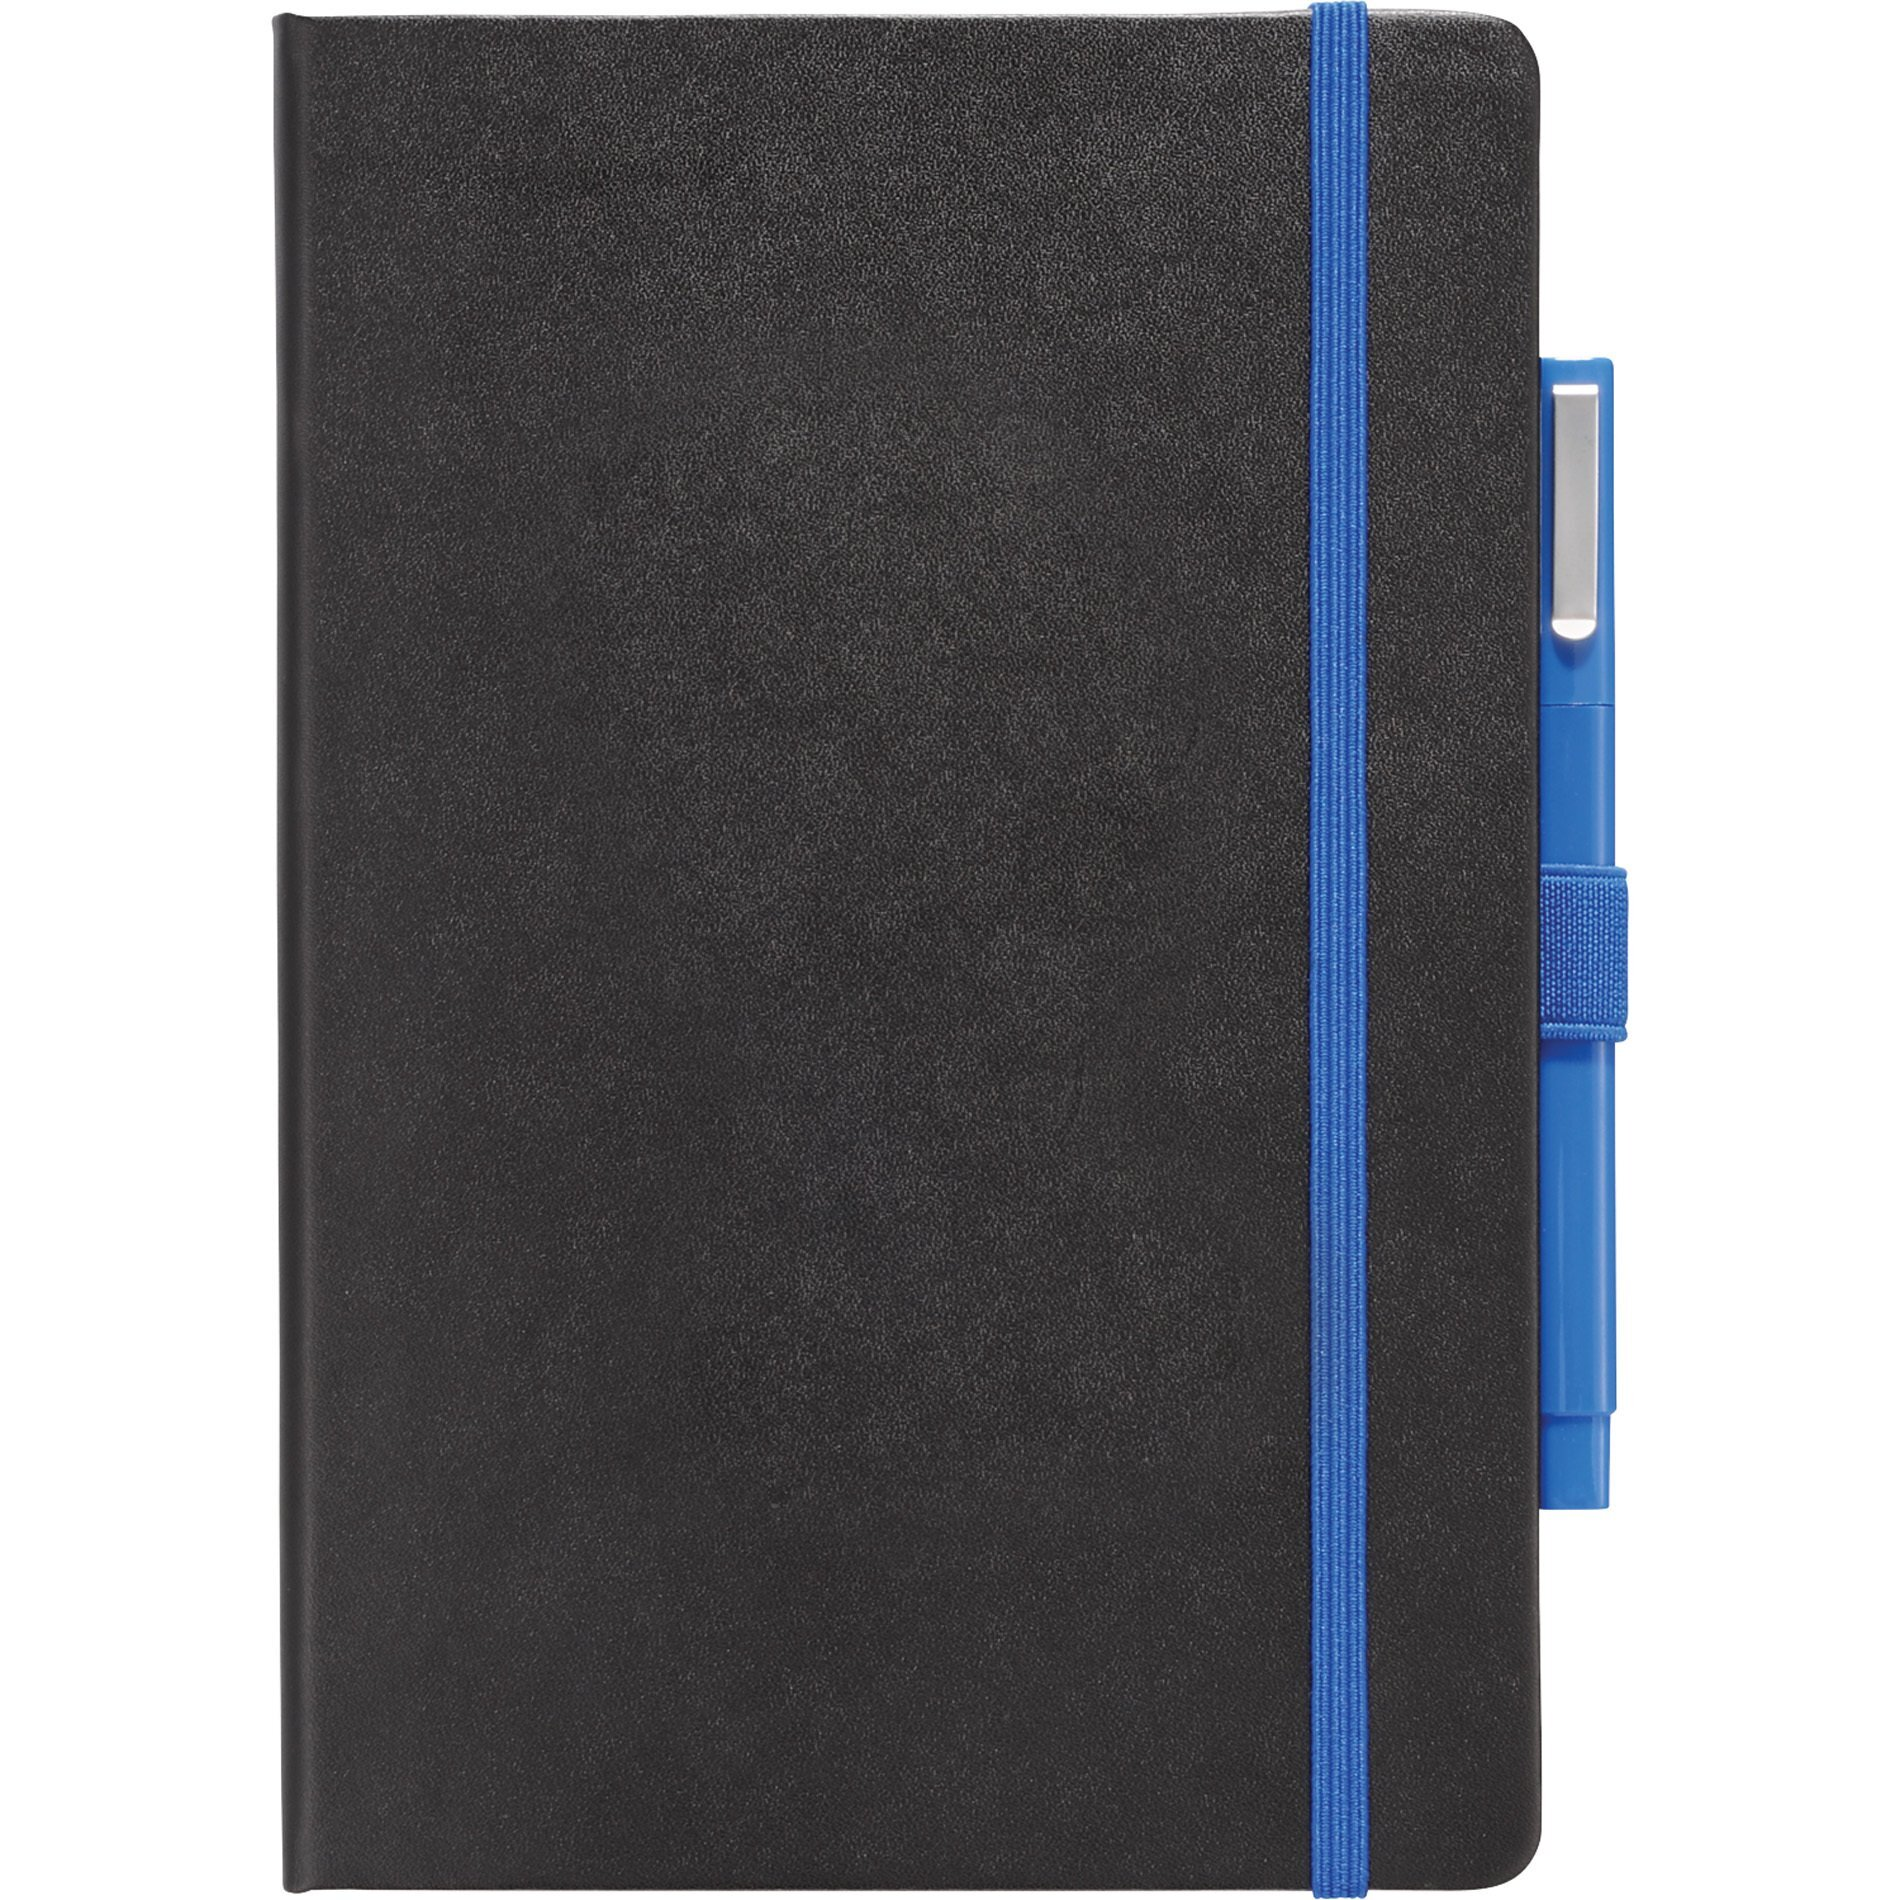 Nova Color Pop Bound JournalBook™ & Pen Gift Set